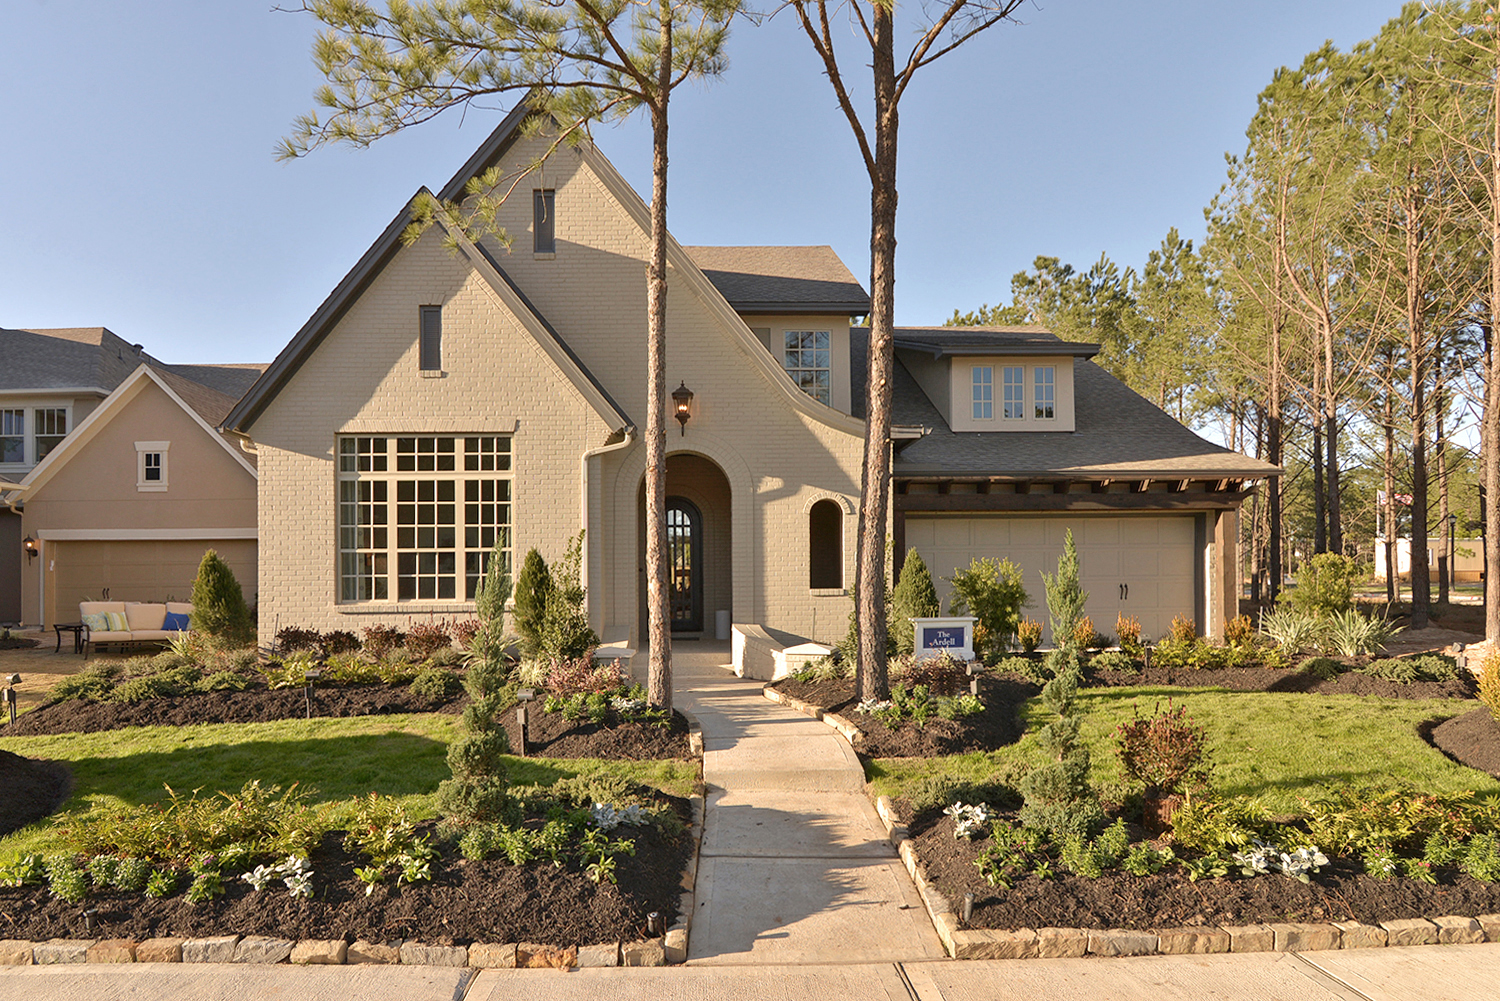 The Woodlands Development Company Is Proud To Welcome Newest Member Of Outstanding Neighborhoods In Village Creekside Park